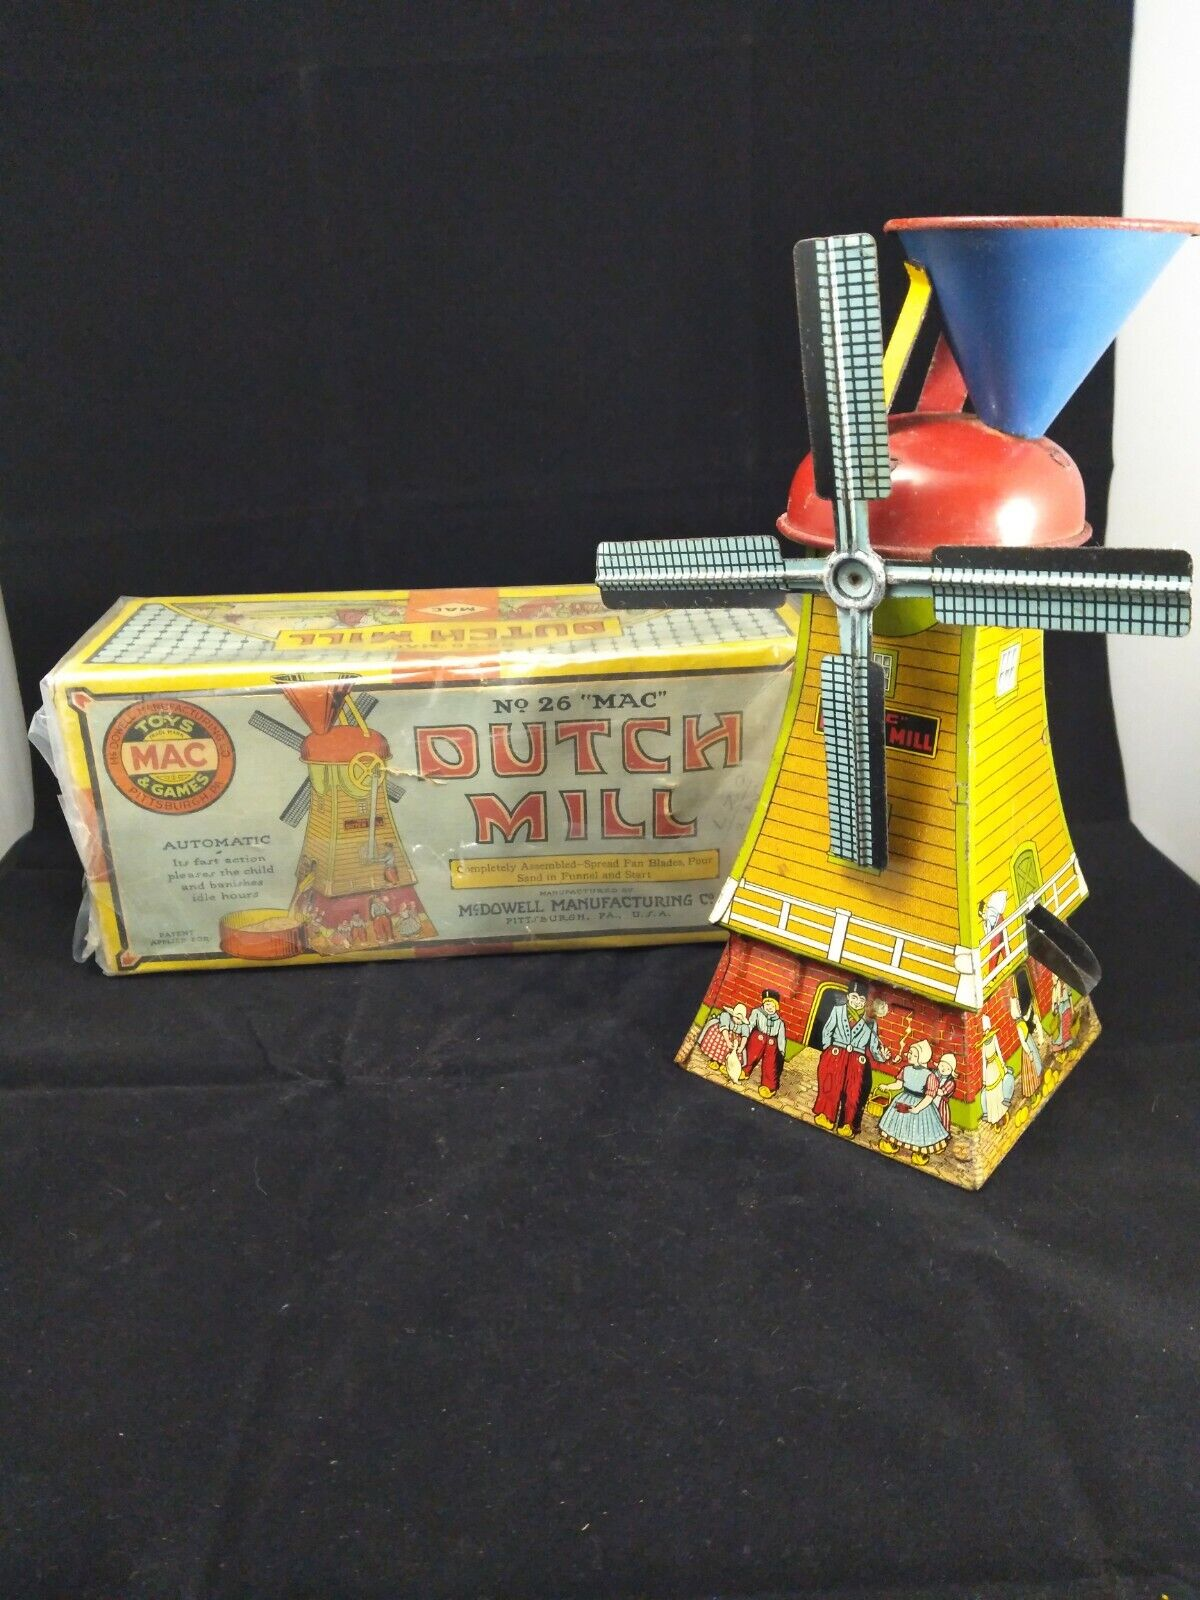 Vintage 1920s Toy Mac Dutch Mill No26  Mac  Sand Toy Tin Lithograph Wow